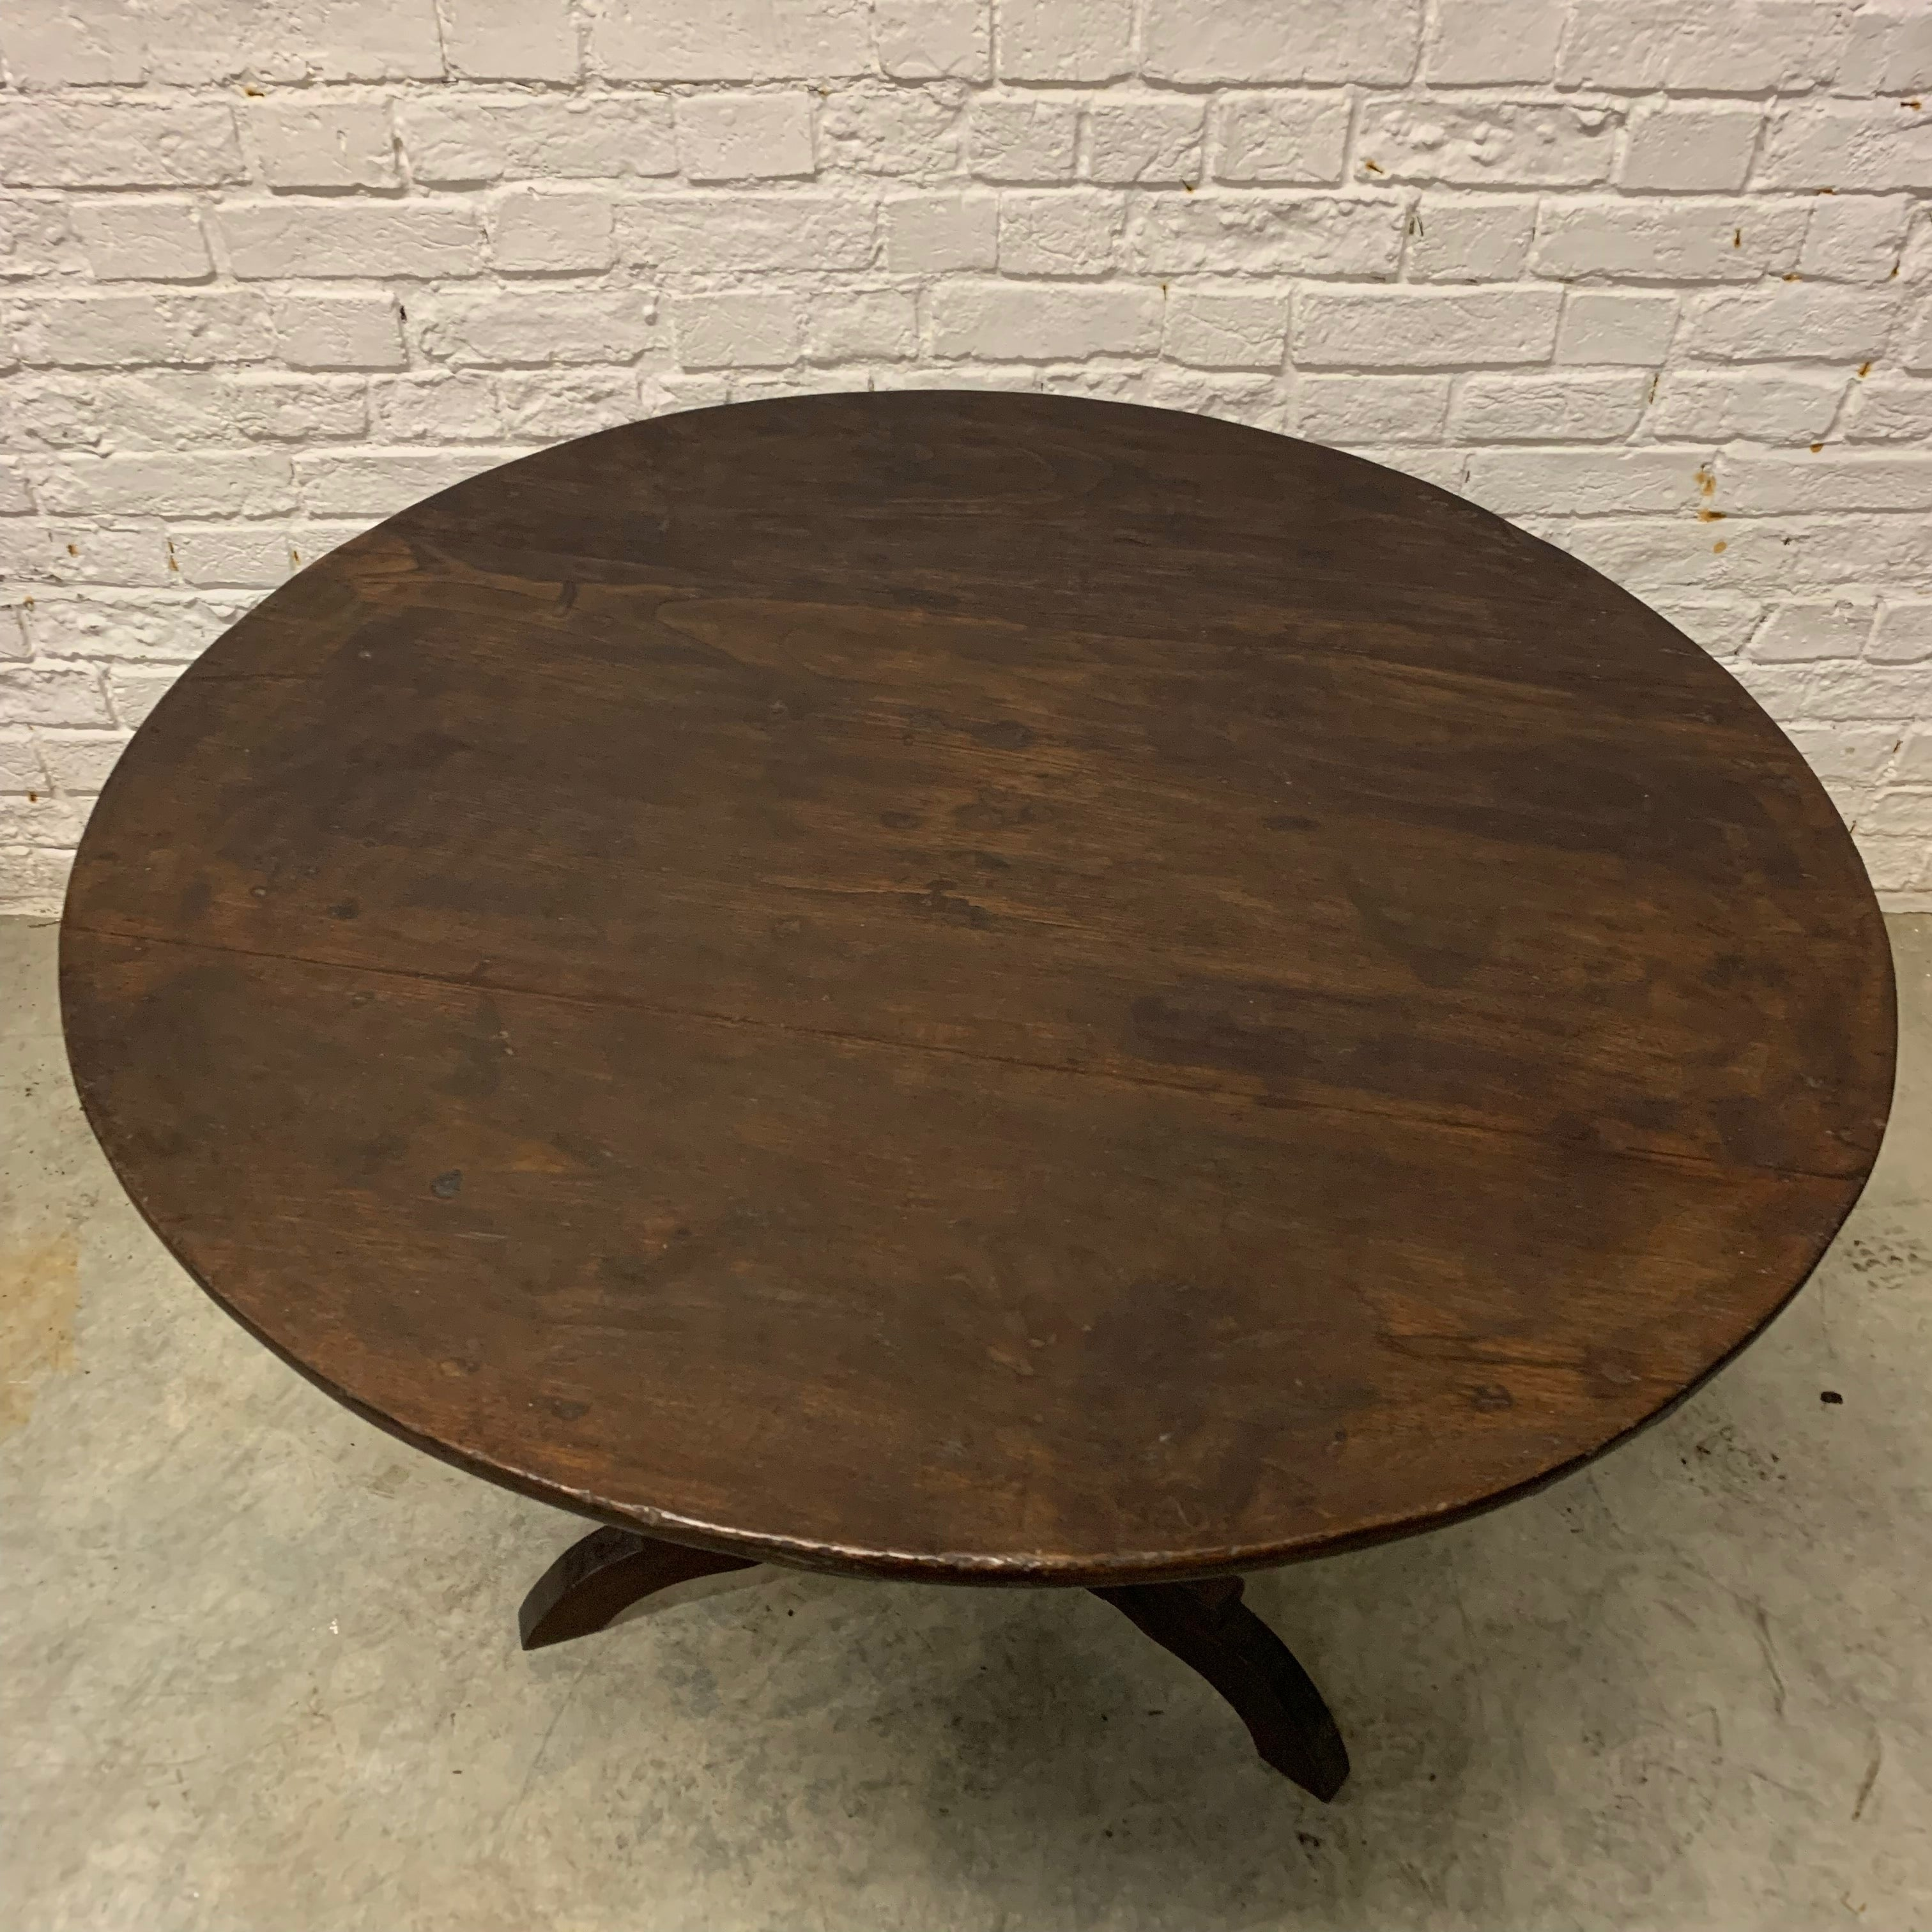 VINTAGE CLASSIC ROUND TABLE